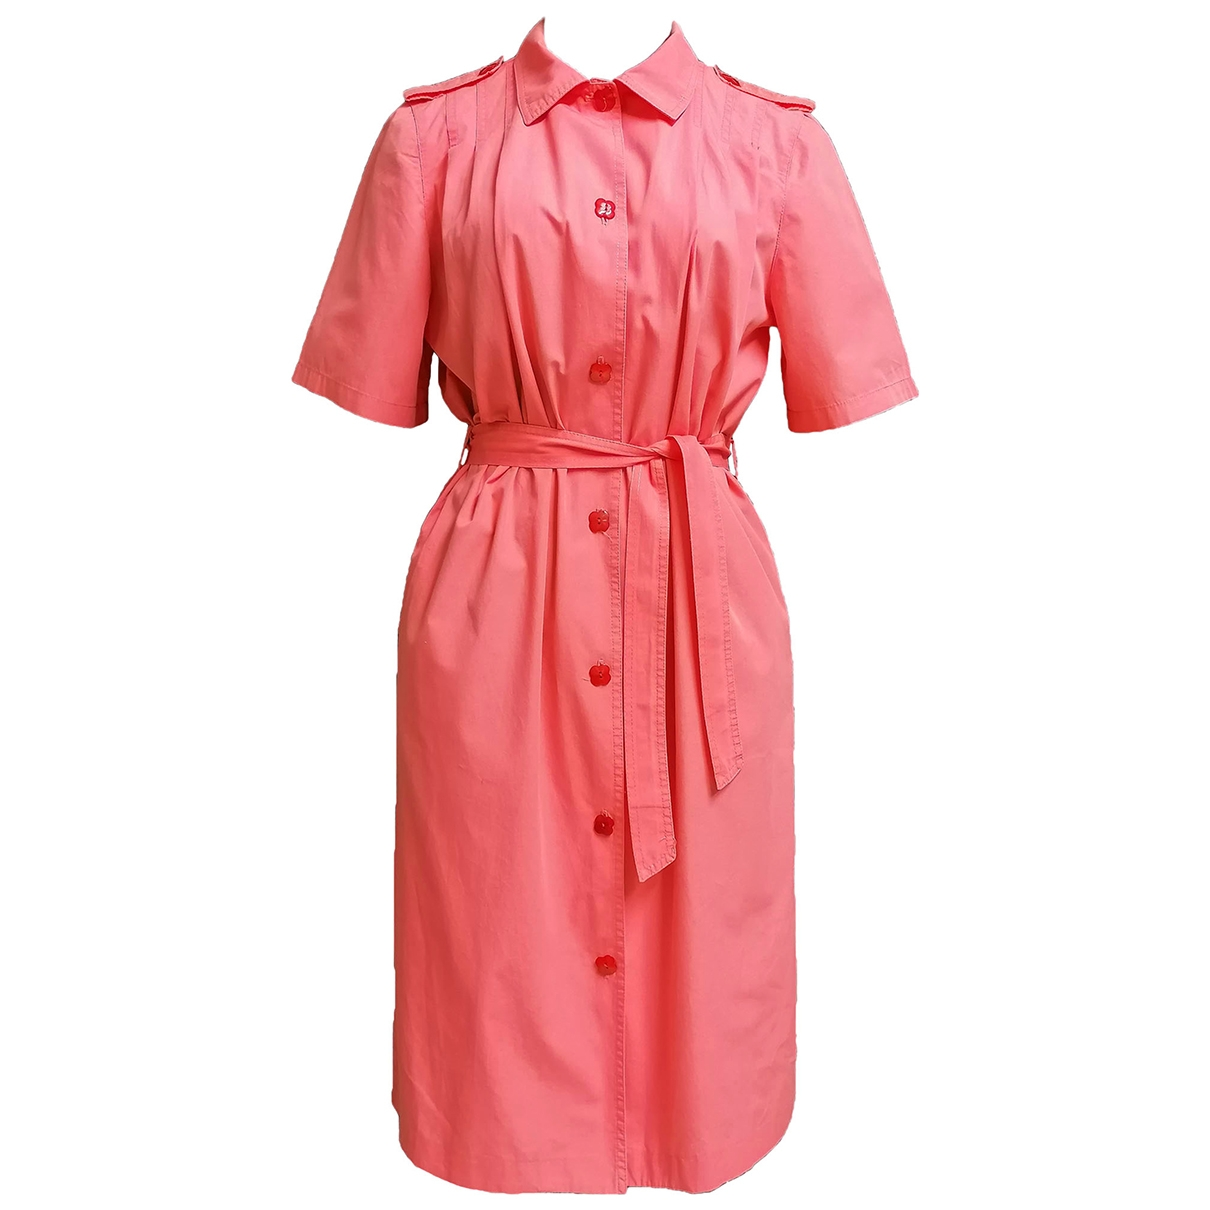 Non Signé / Unsigned \N Pink Cotton dress for Women L International